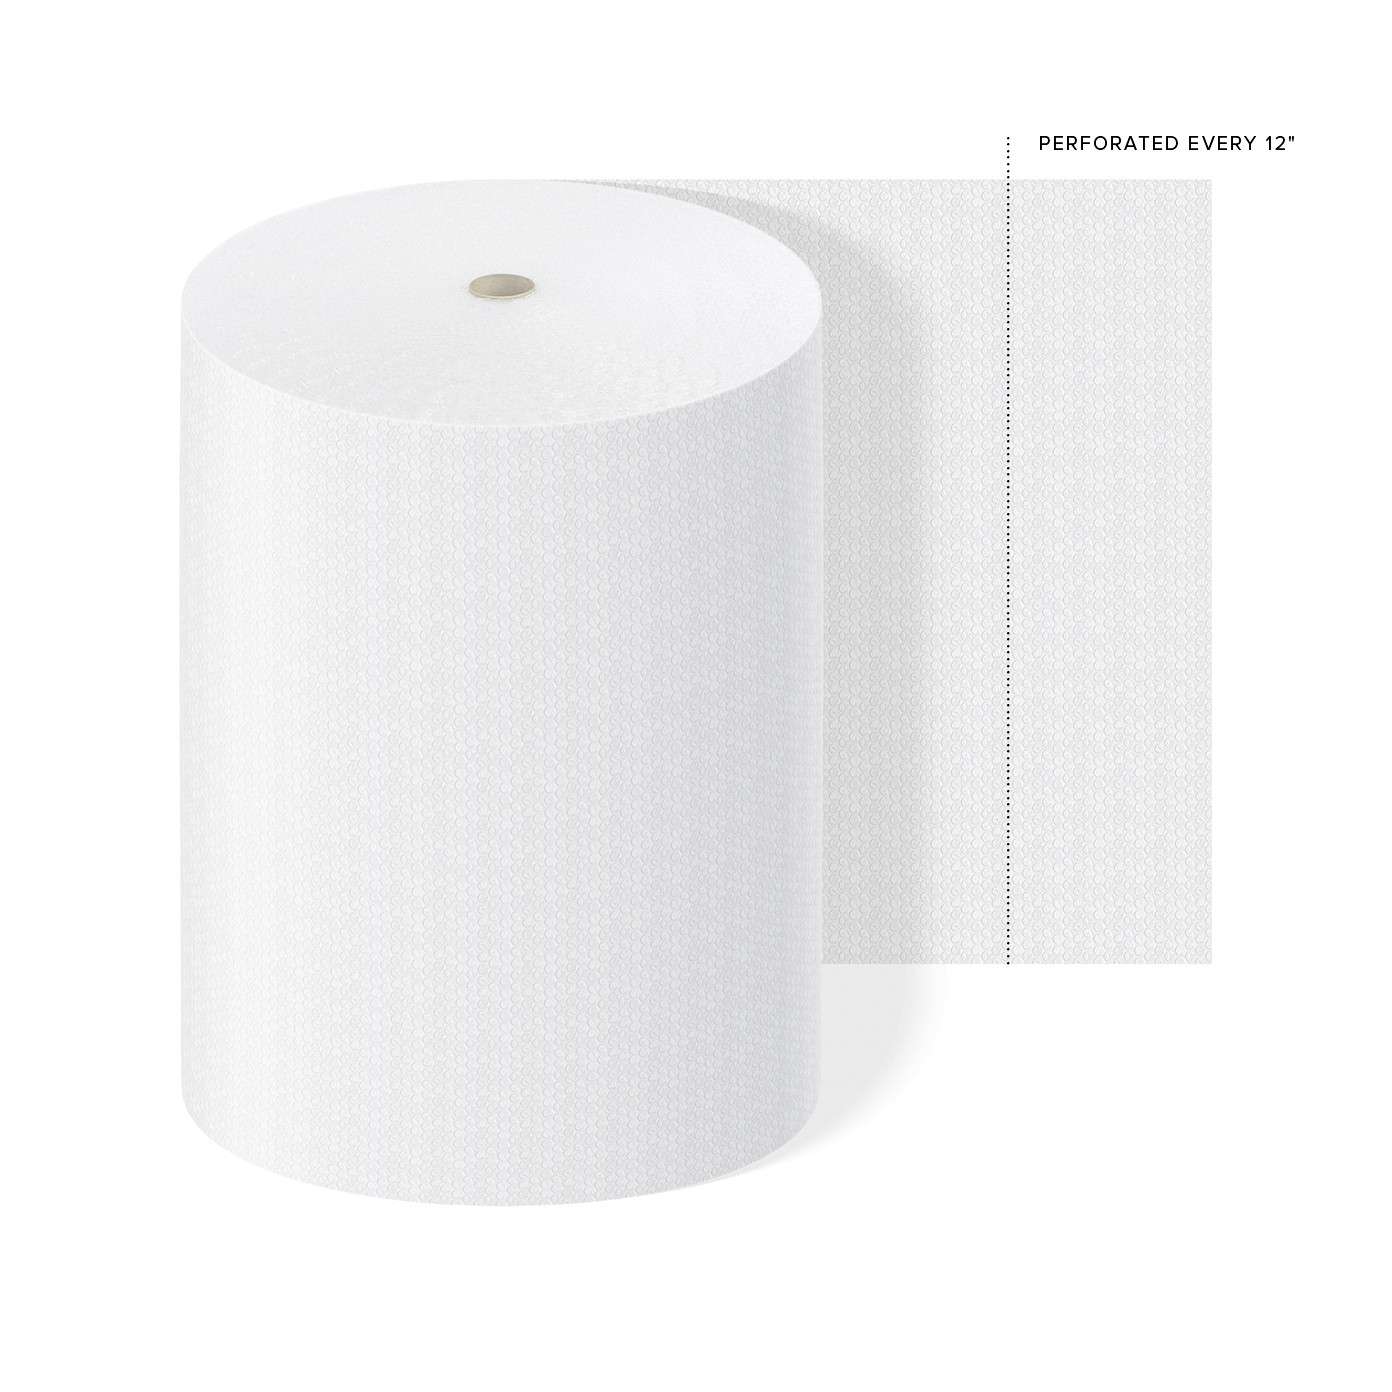 "TOTALPACK® 3/16"" x 48"" x 500' Perforated Every 12"", Air Bubble 1 Roll"